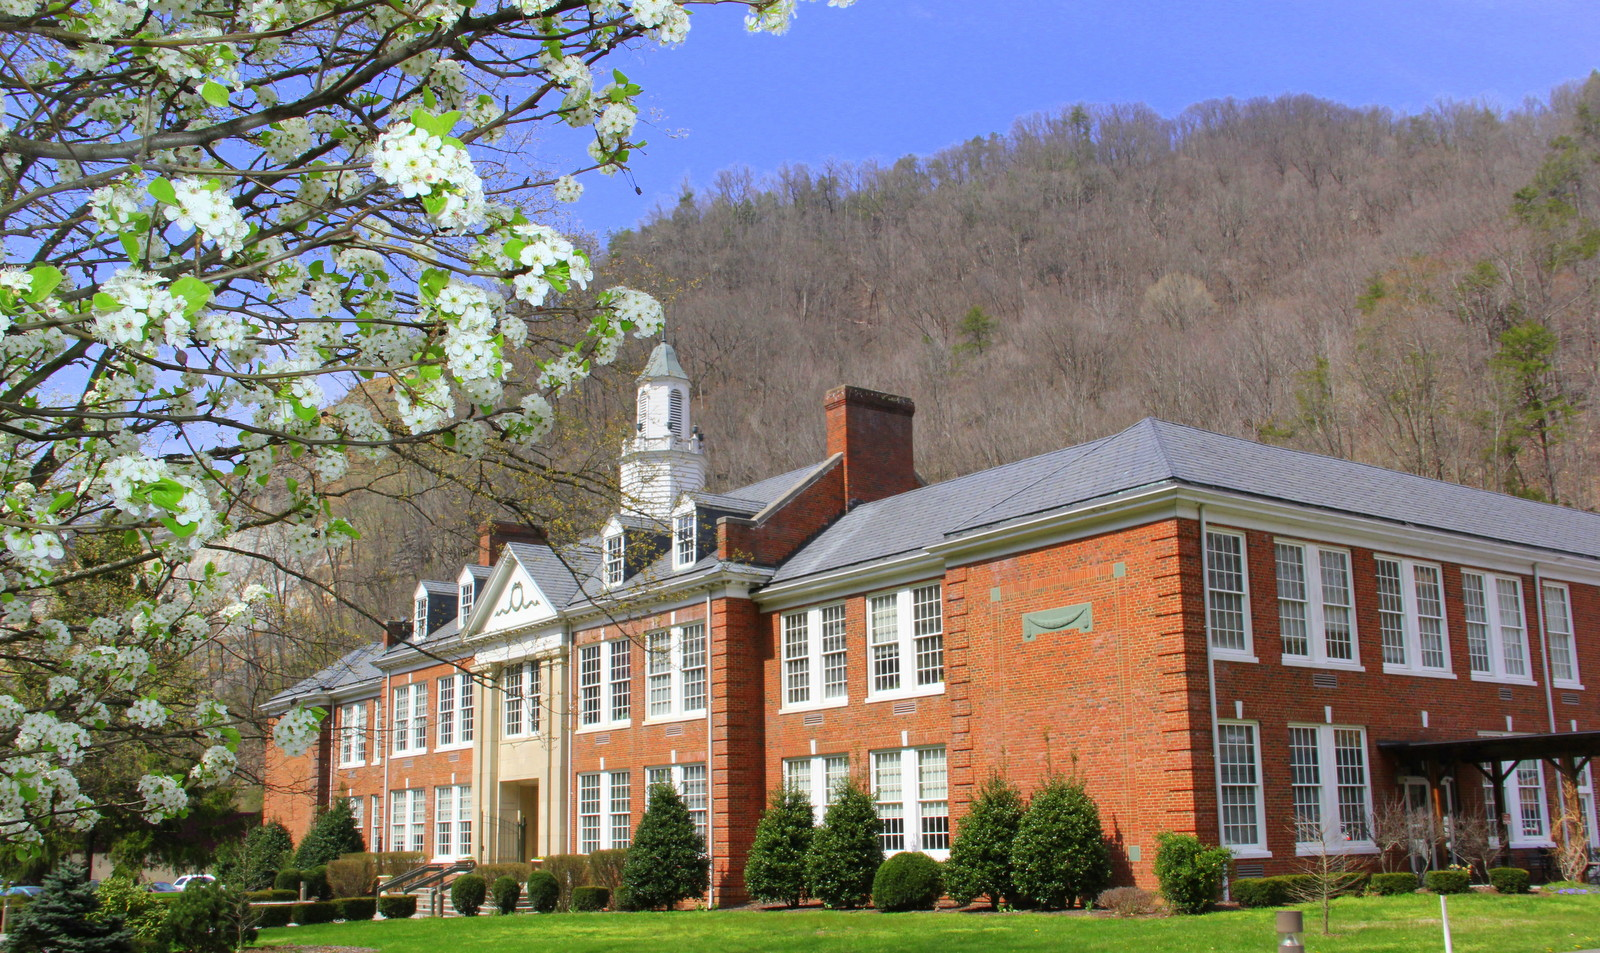 https://upload.wikimedia.org/wikipedia/commons/c/ce/Appalachian_School_of_Law%2C_Grundy_Virginia.JPG